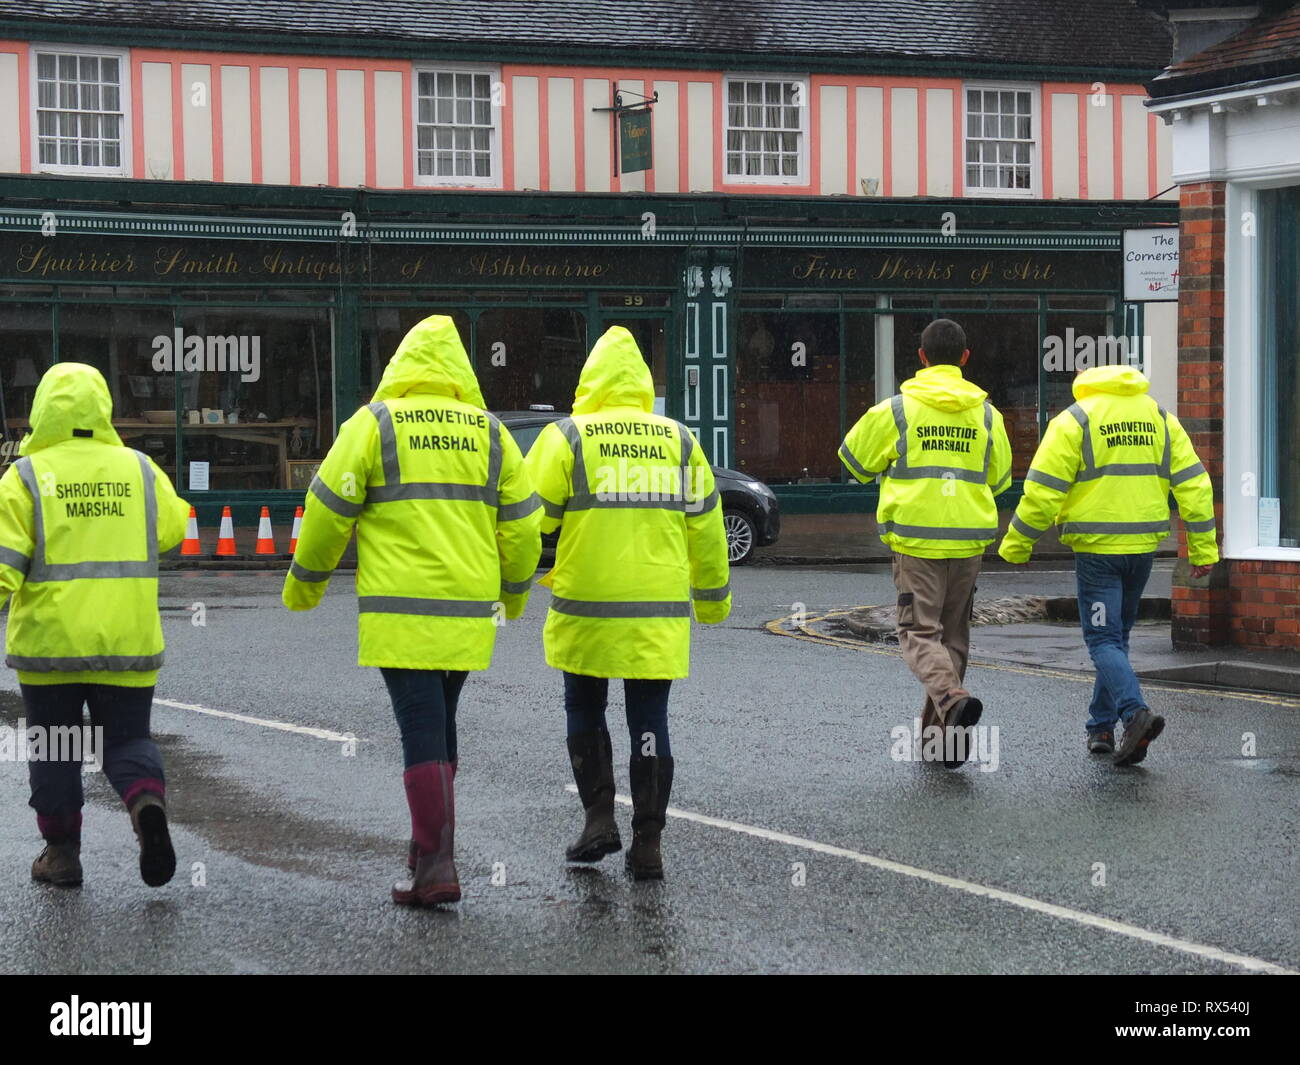 Ashbourne Shrovetide Football 2019. Game marshals in high vis jackets patrol the streets of the historic town prior to the Ash Wednesday match. Stock Photo